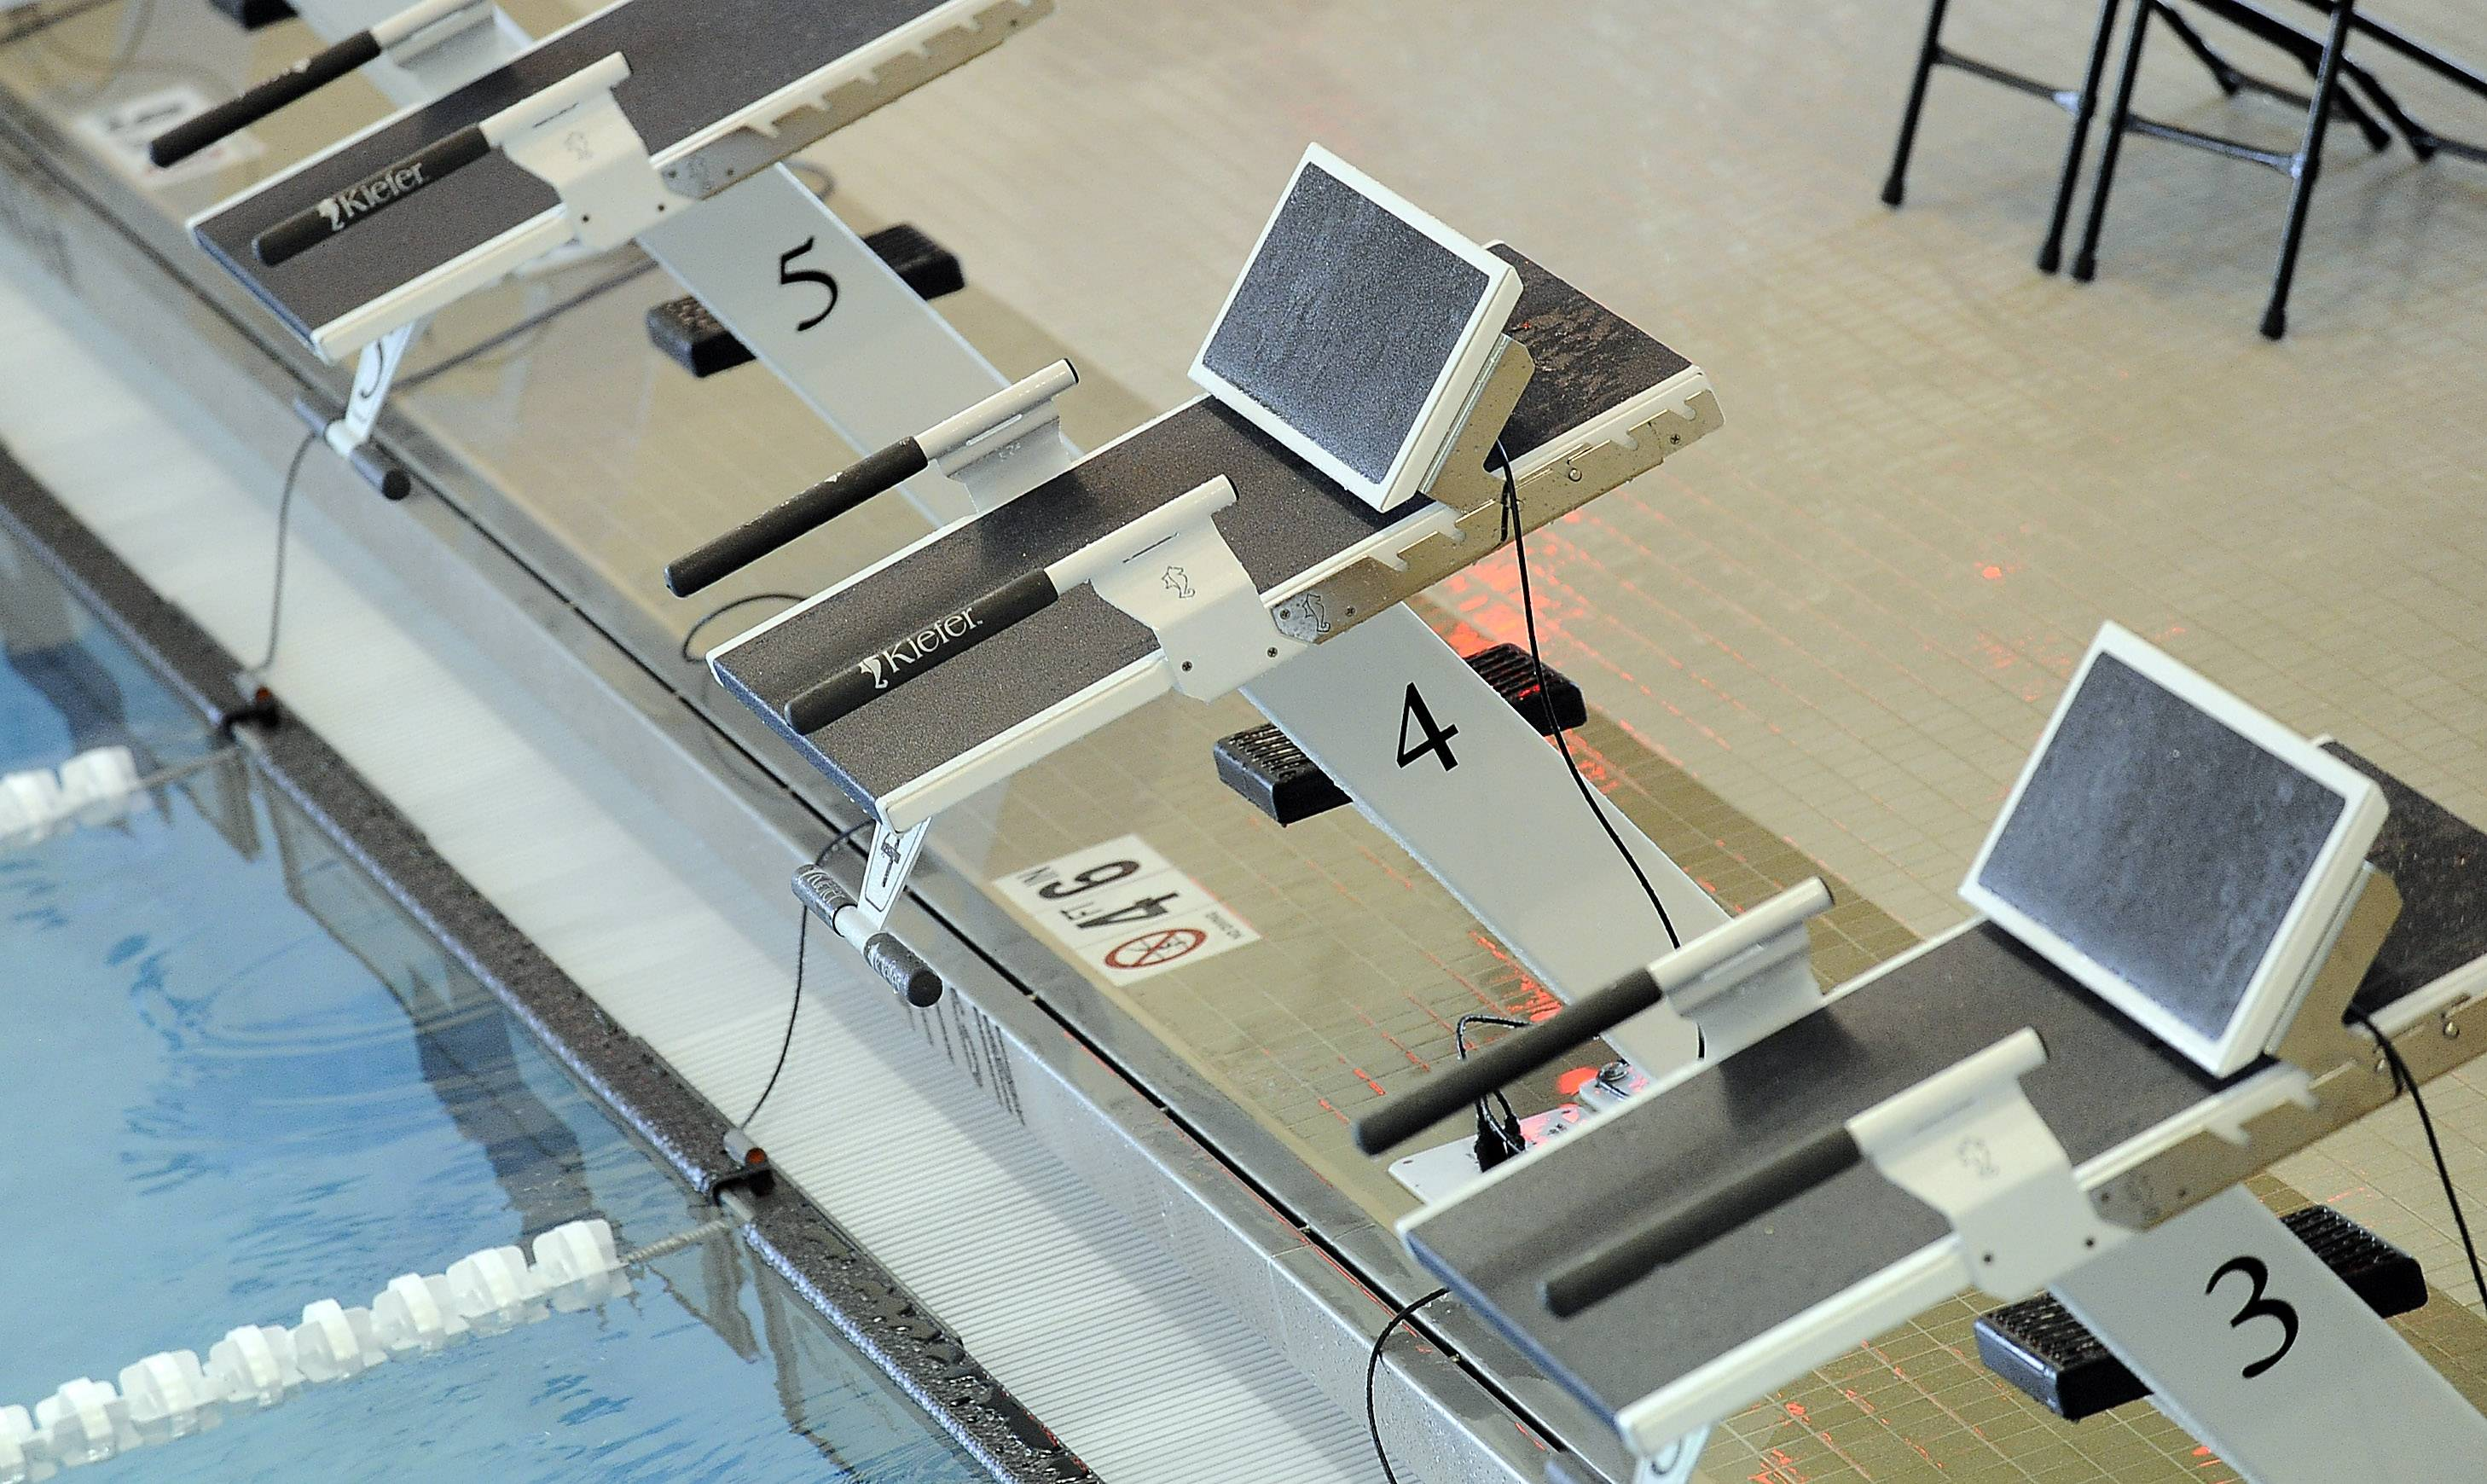 The new pool at Buffalo Grove High School has Kiefer starting blocks which allow for track-style starts.